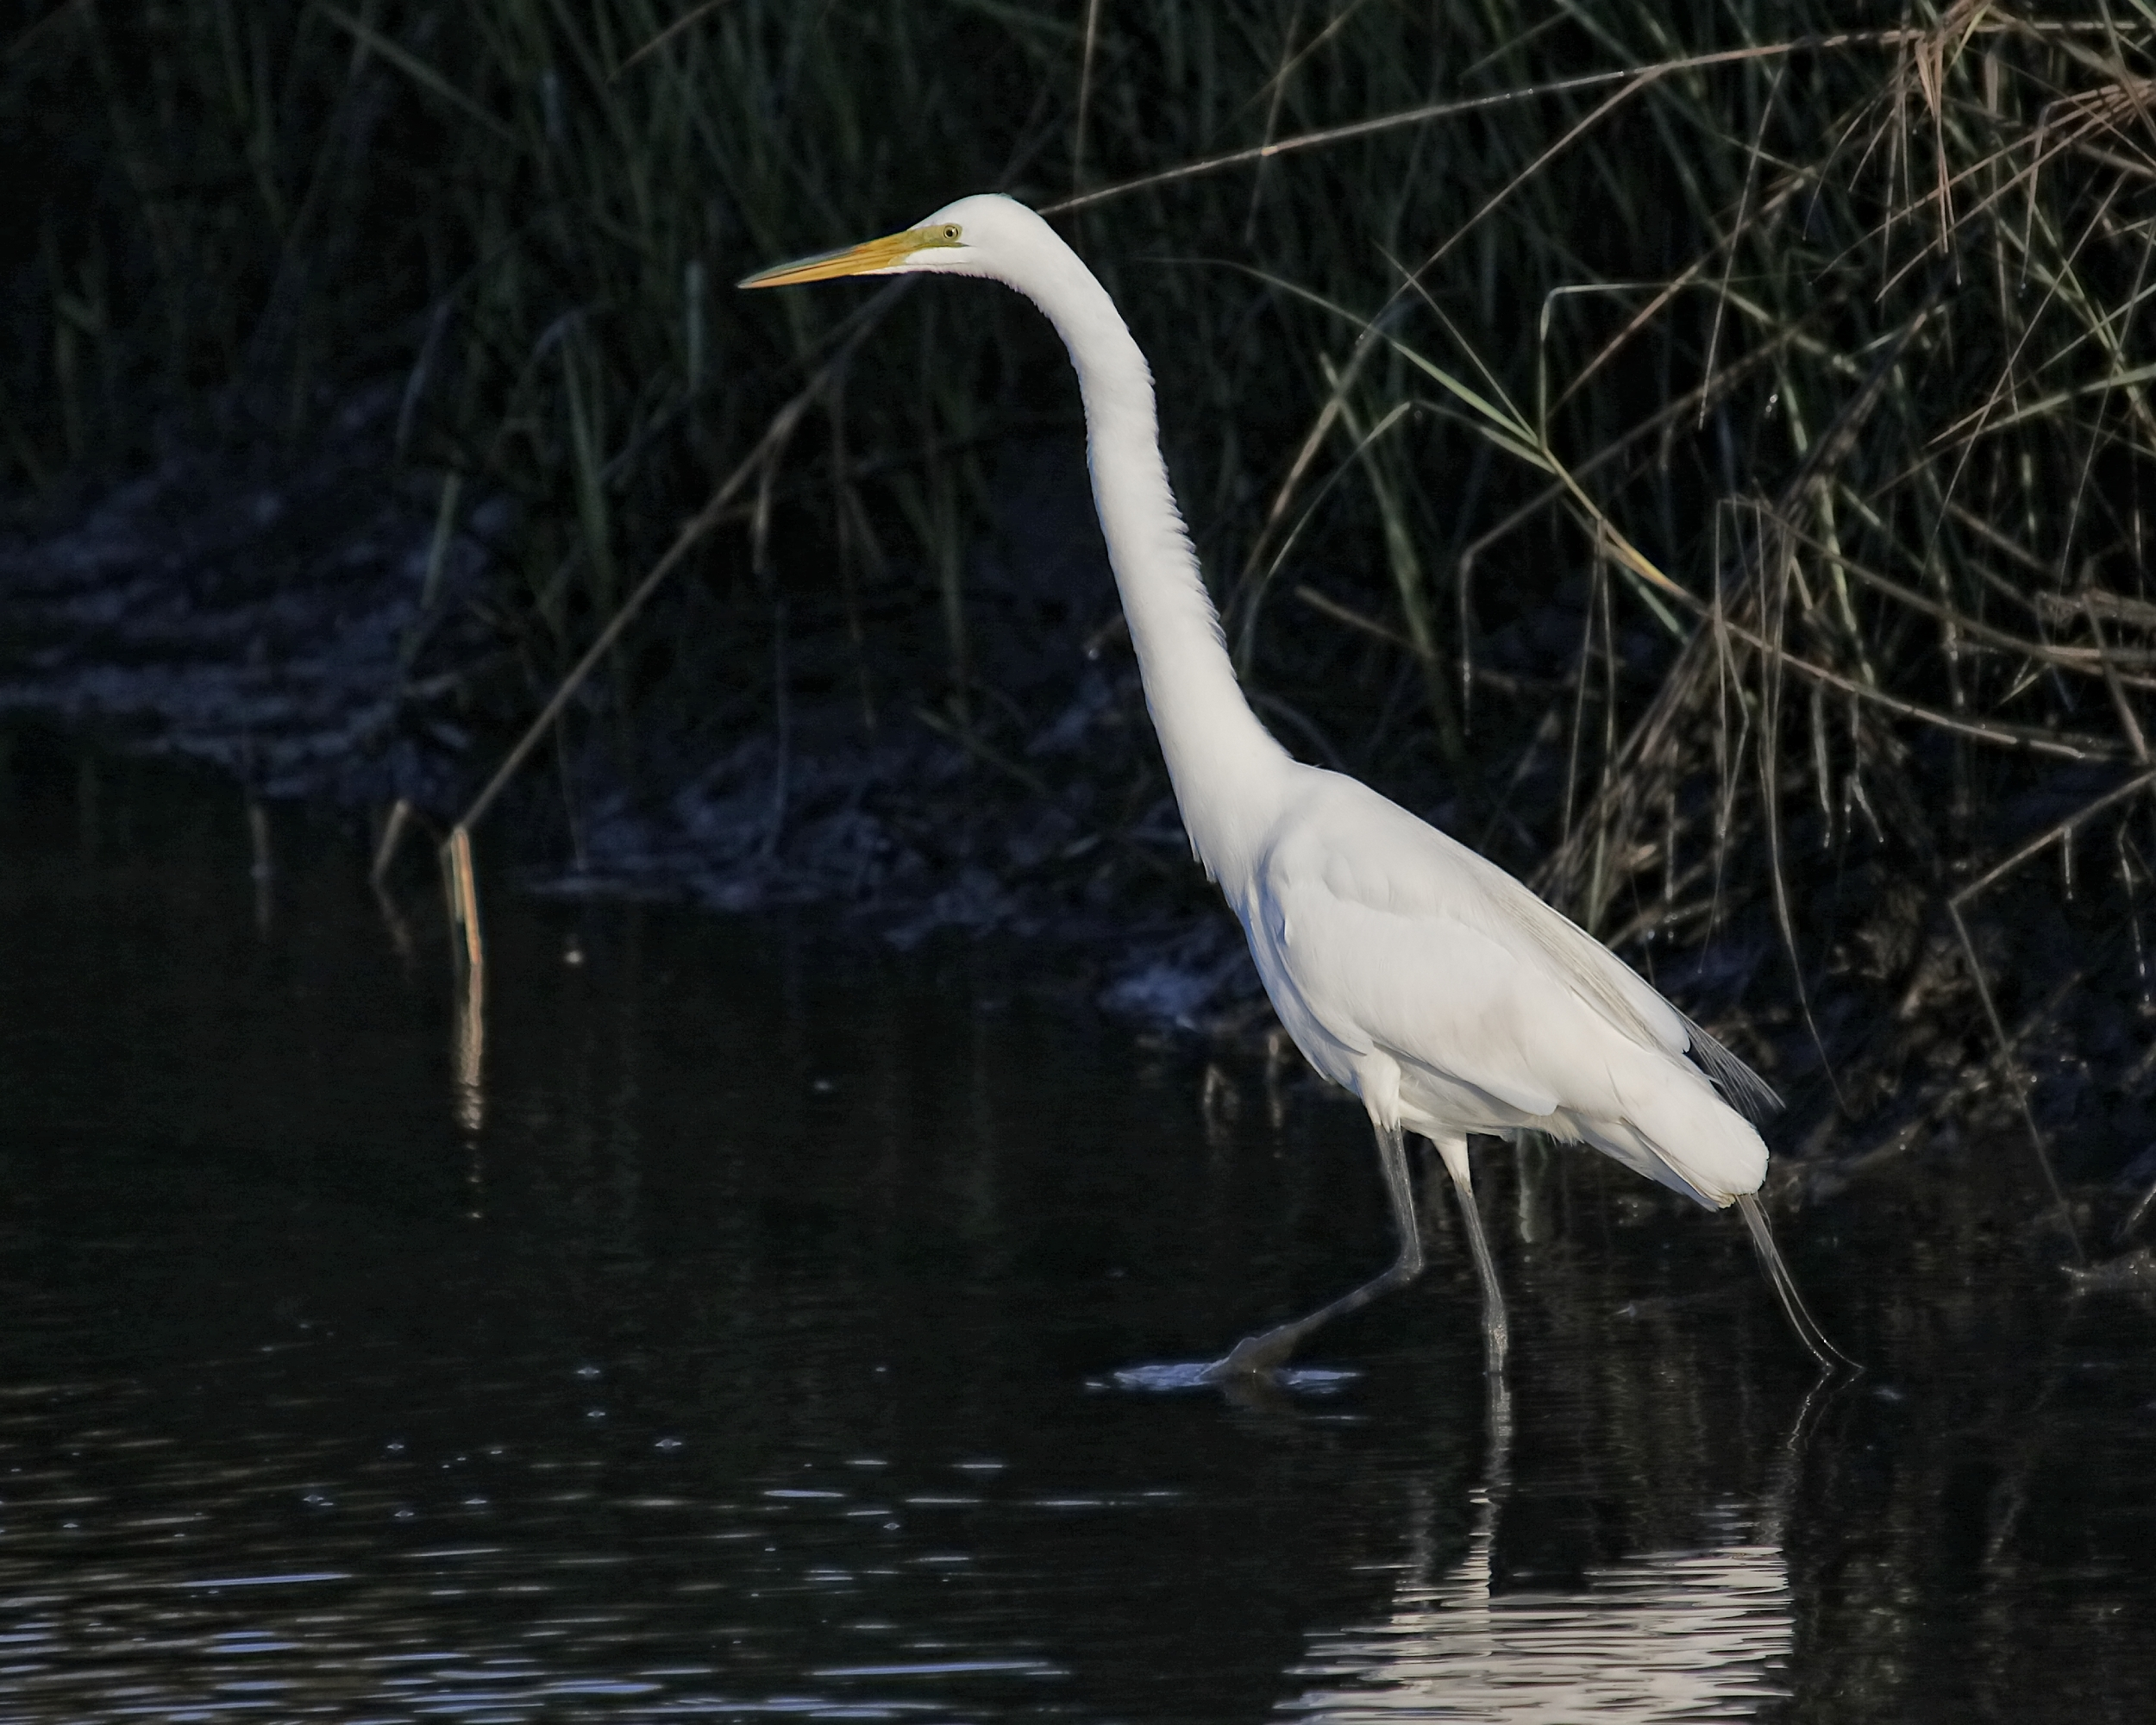 The next morningbegins as usual, The Great Egret finds a nice quiet spot in the marsh to hunt for minnows.